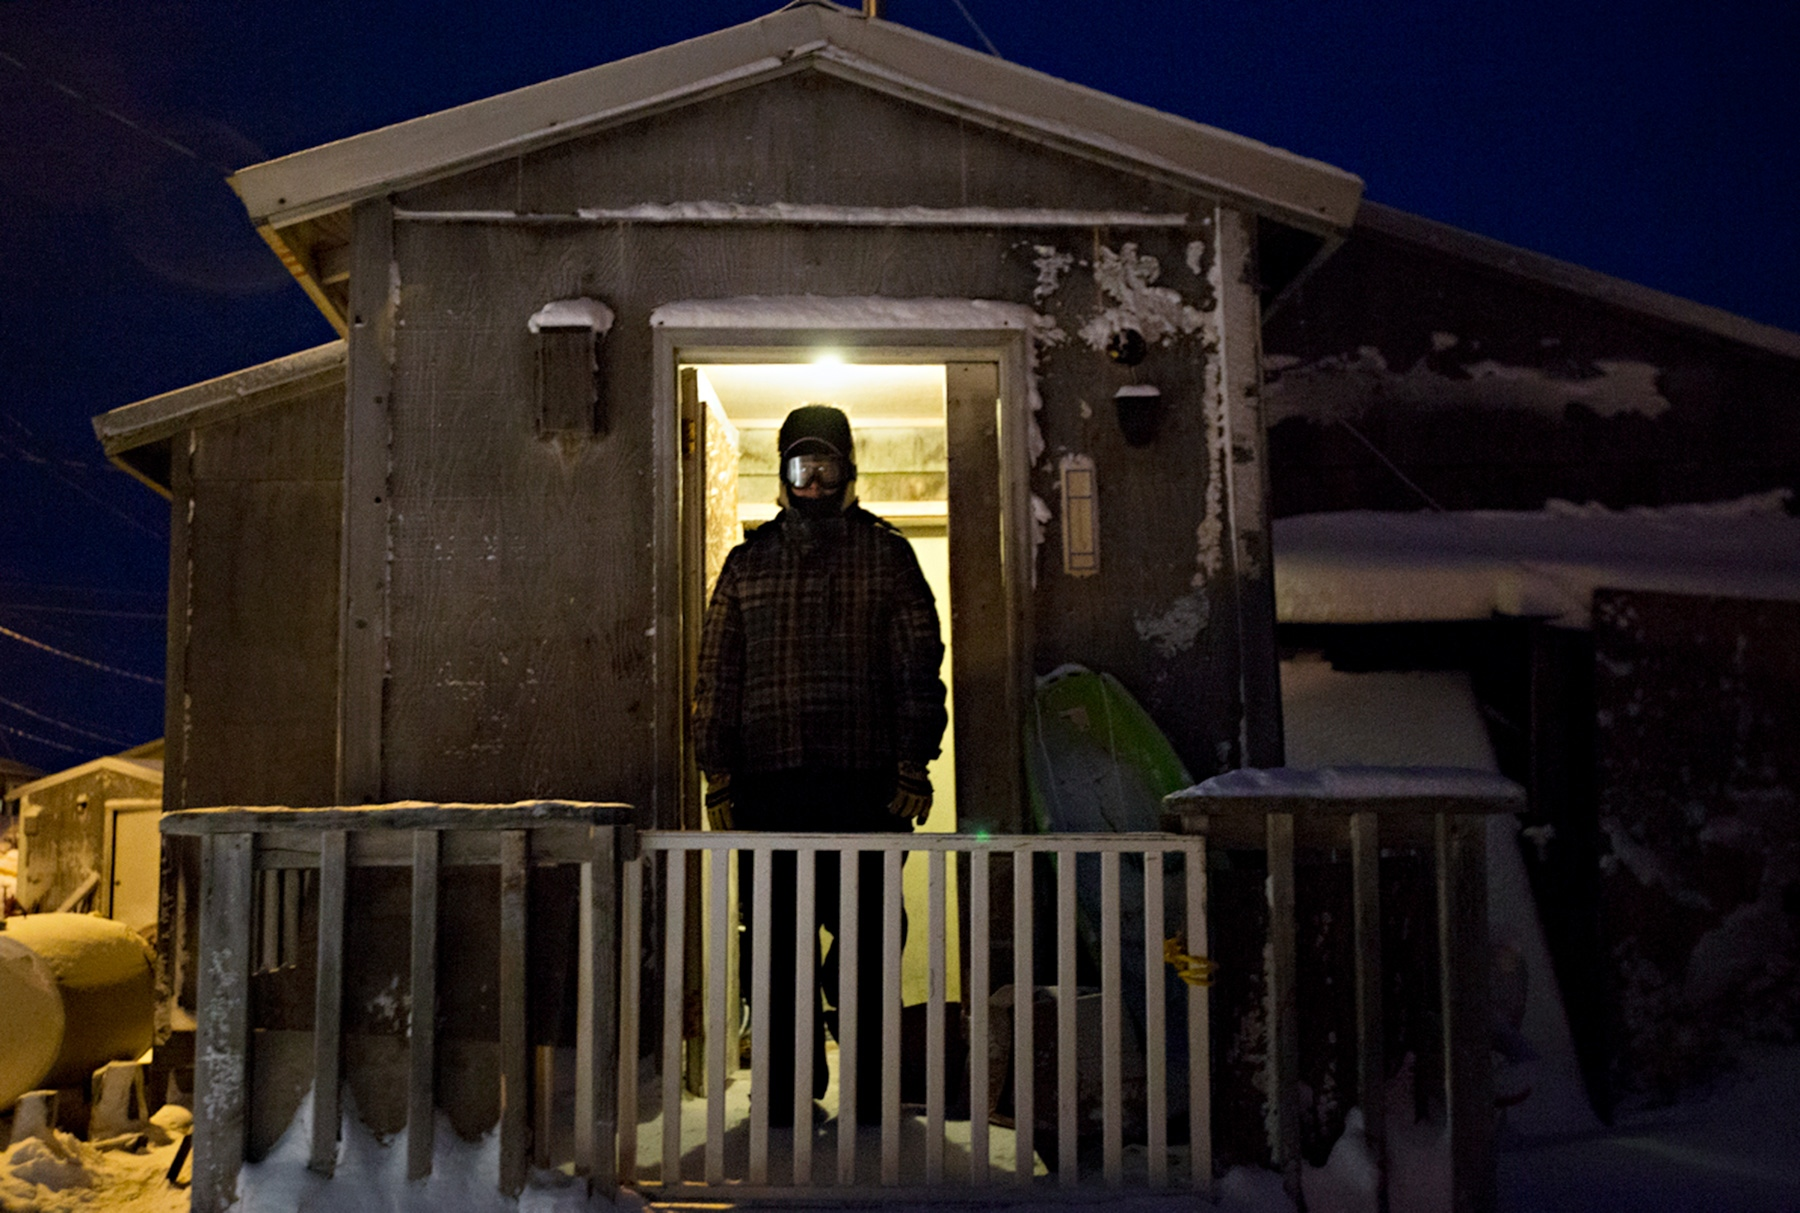 Justin Eningowuk, 27 years old, waits for his snow machine to warm up on a frigid morning before heading out to work.